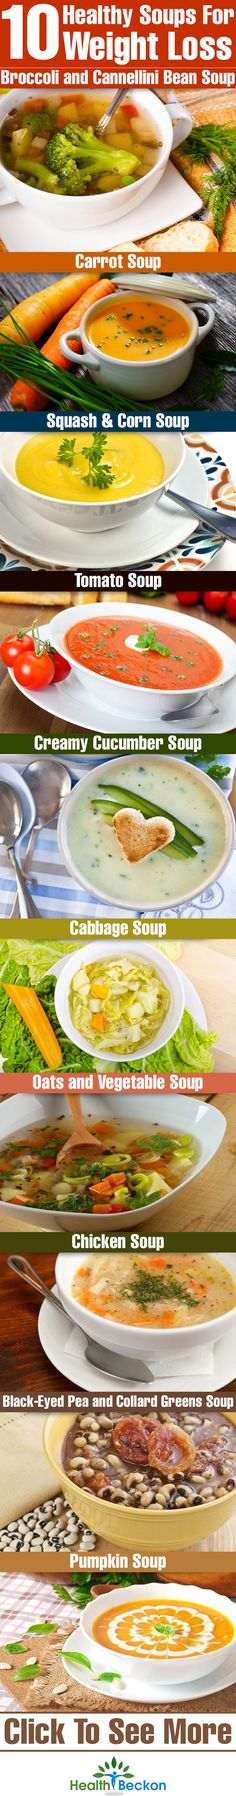 Top 10 Healthy Soups For Weight Loss